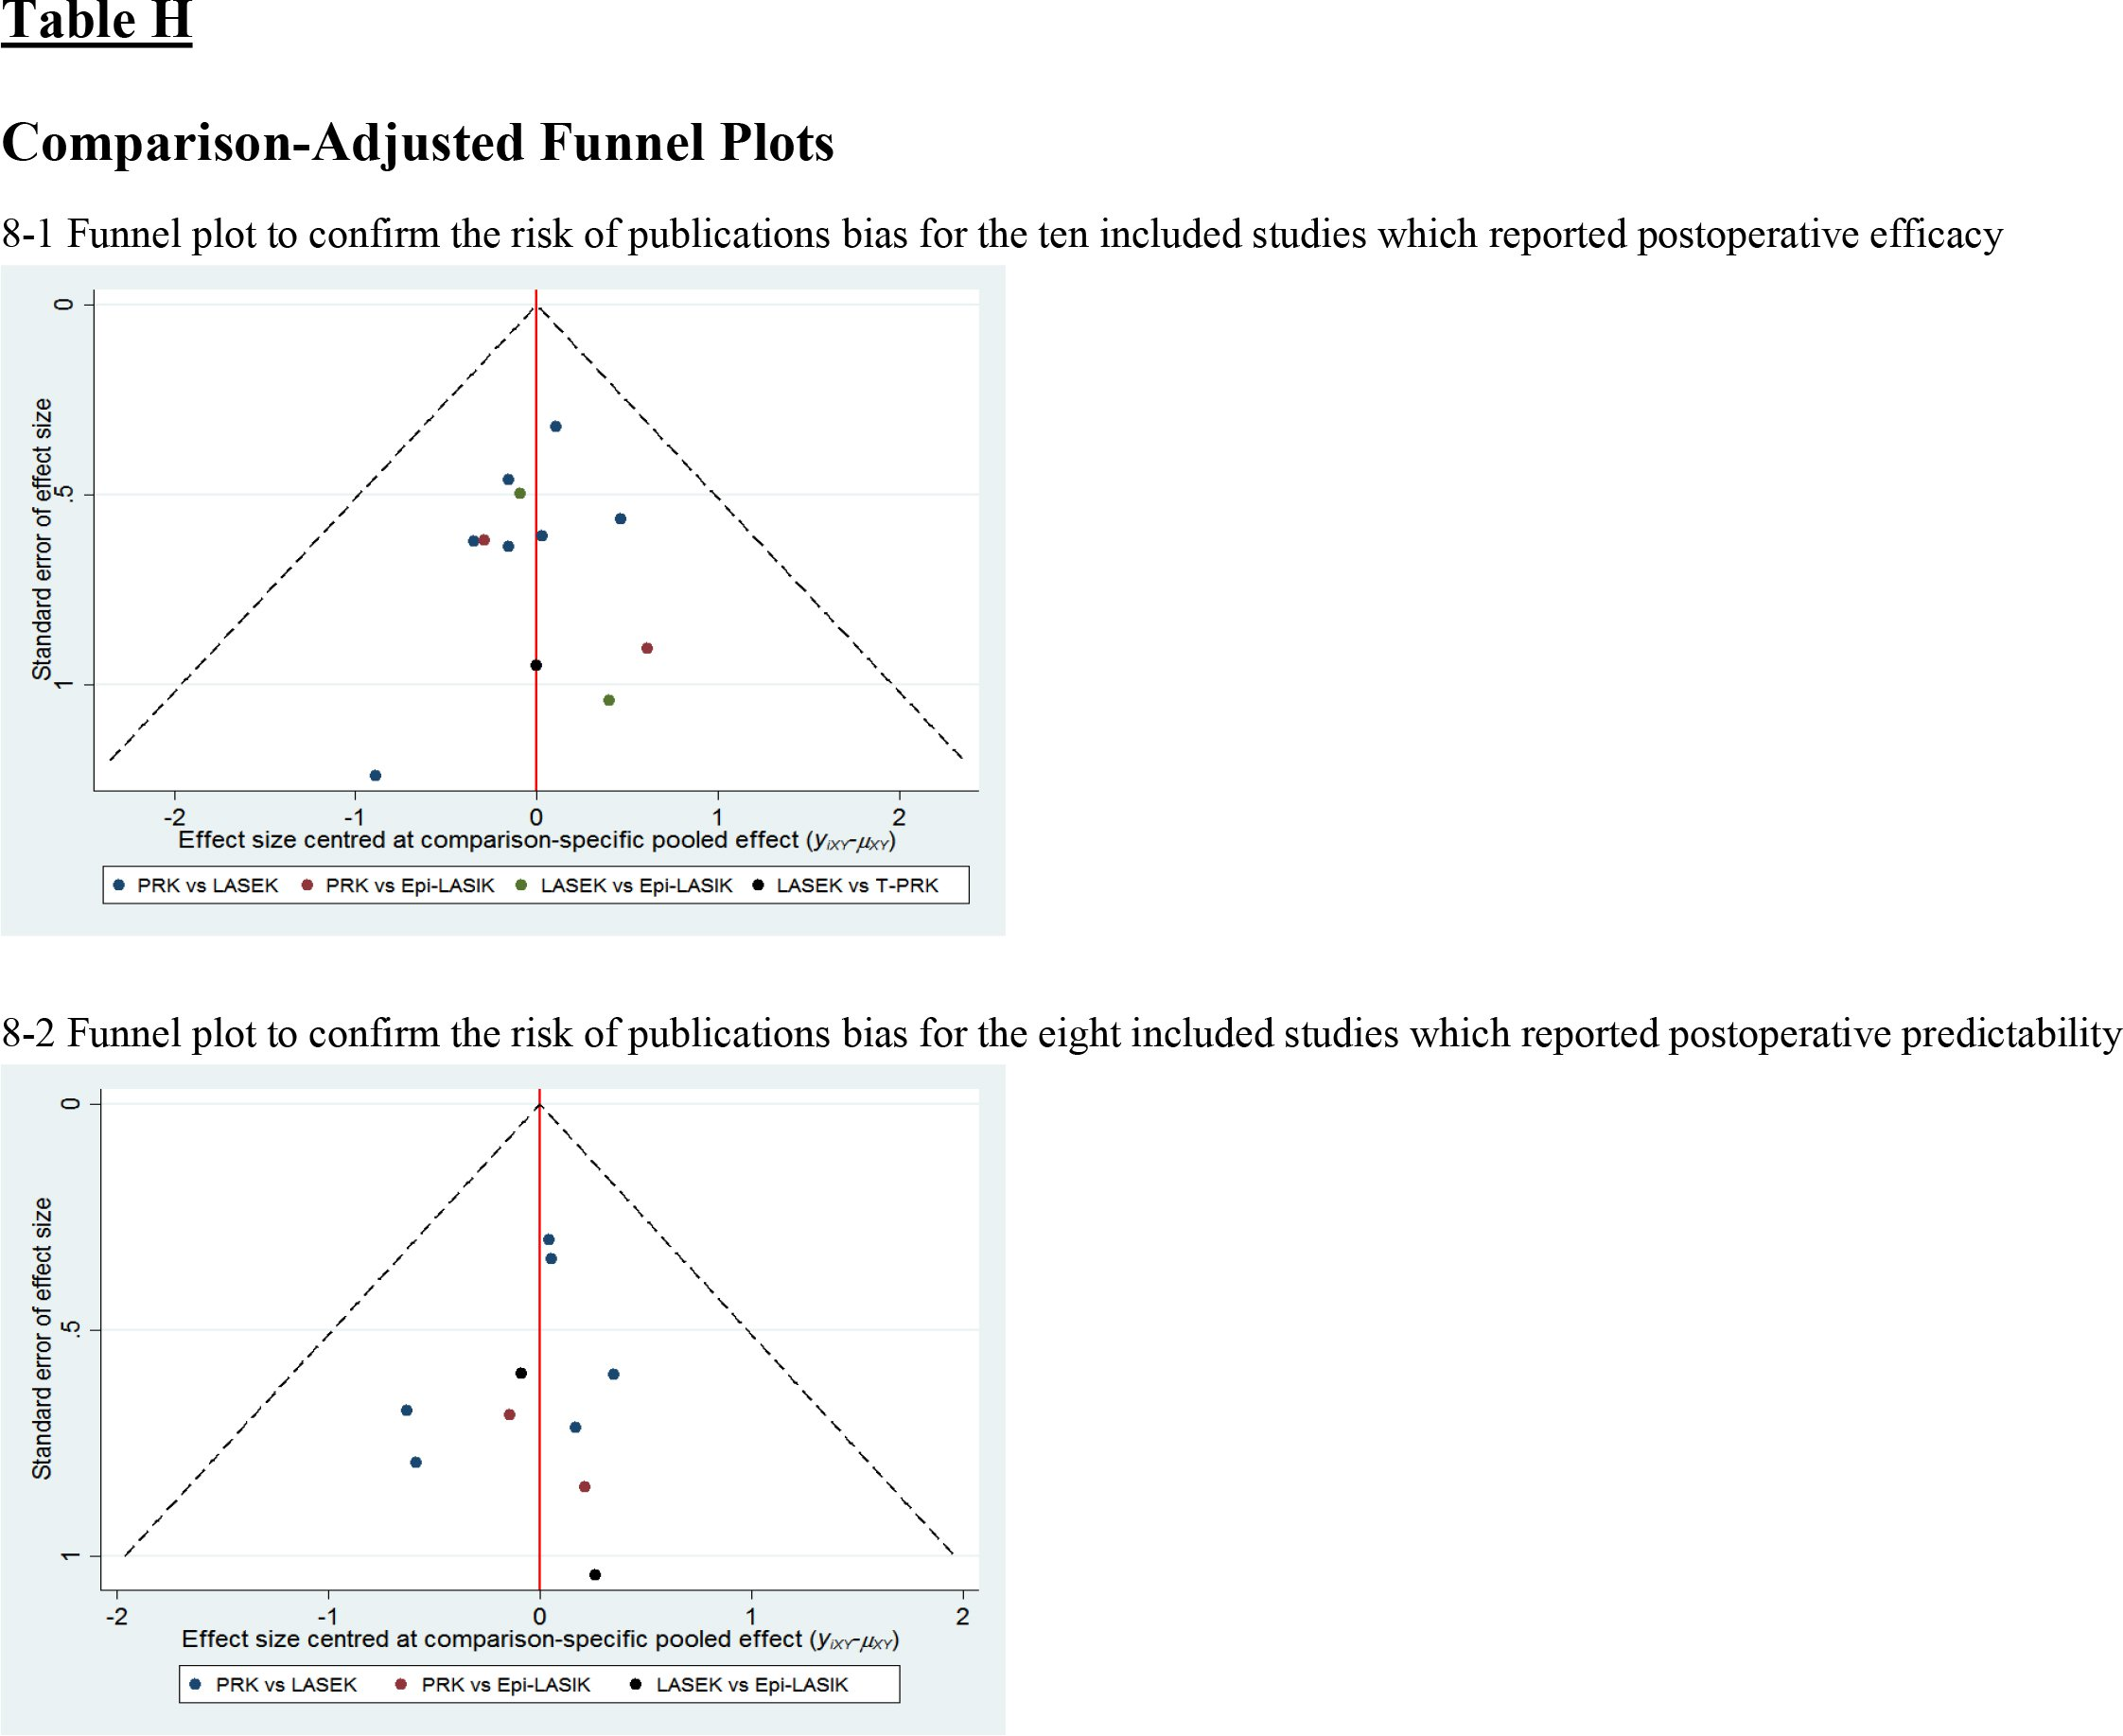 Comparison-Adjusted Funnel Plots